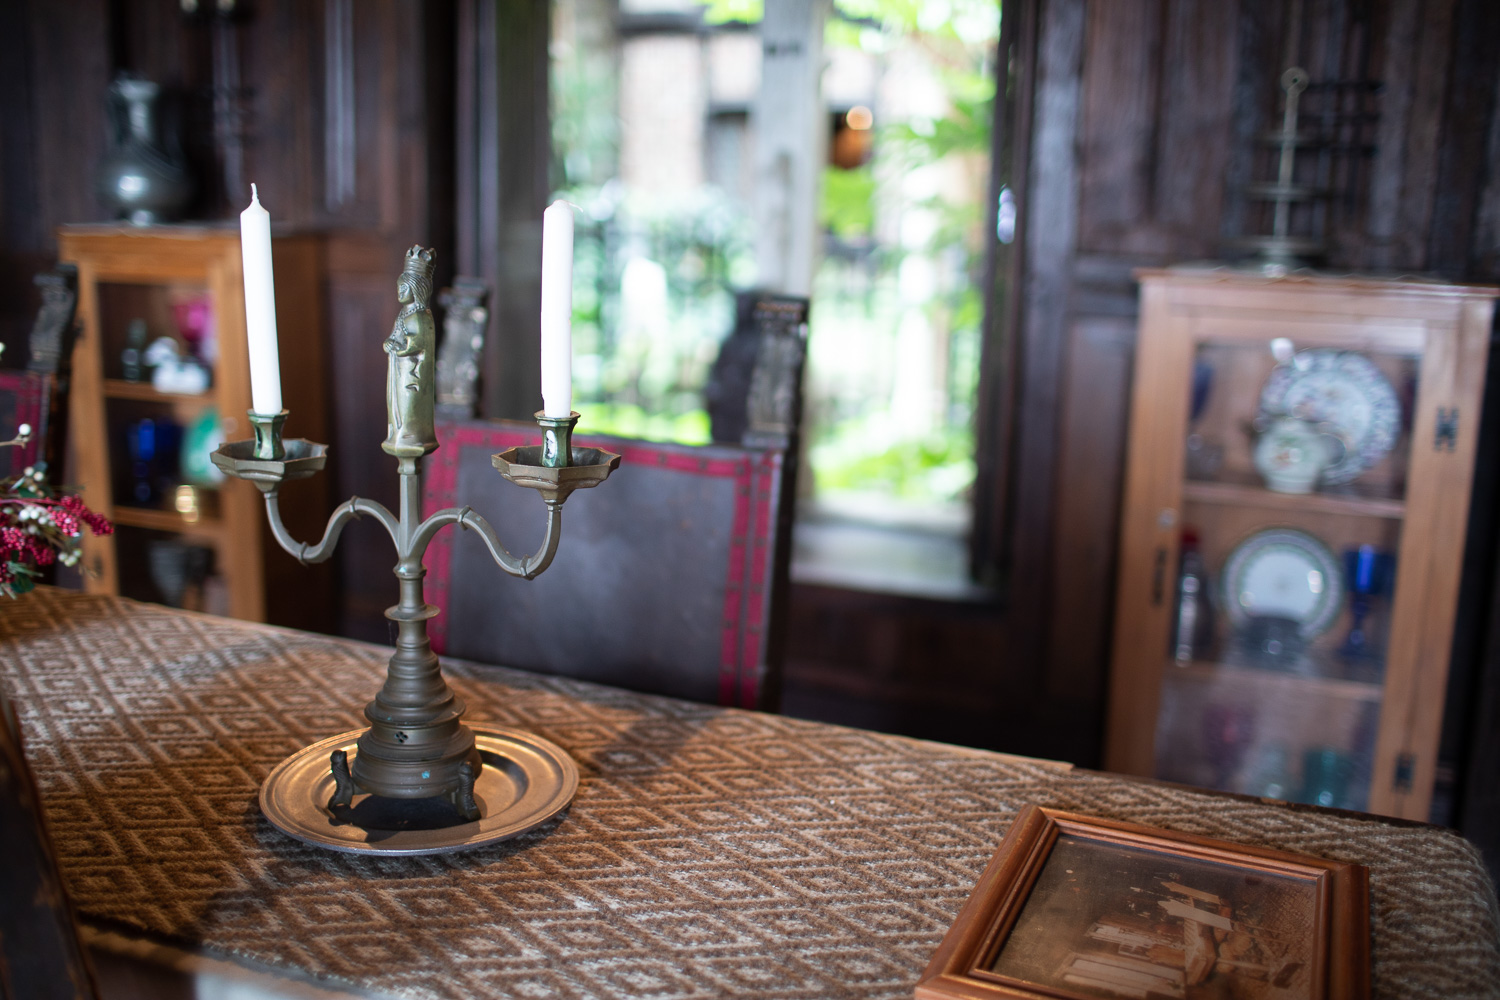 The dining room table. The majority of items at the Hammond Castle are antiques that have been brought over from Europe.